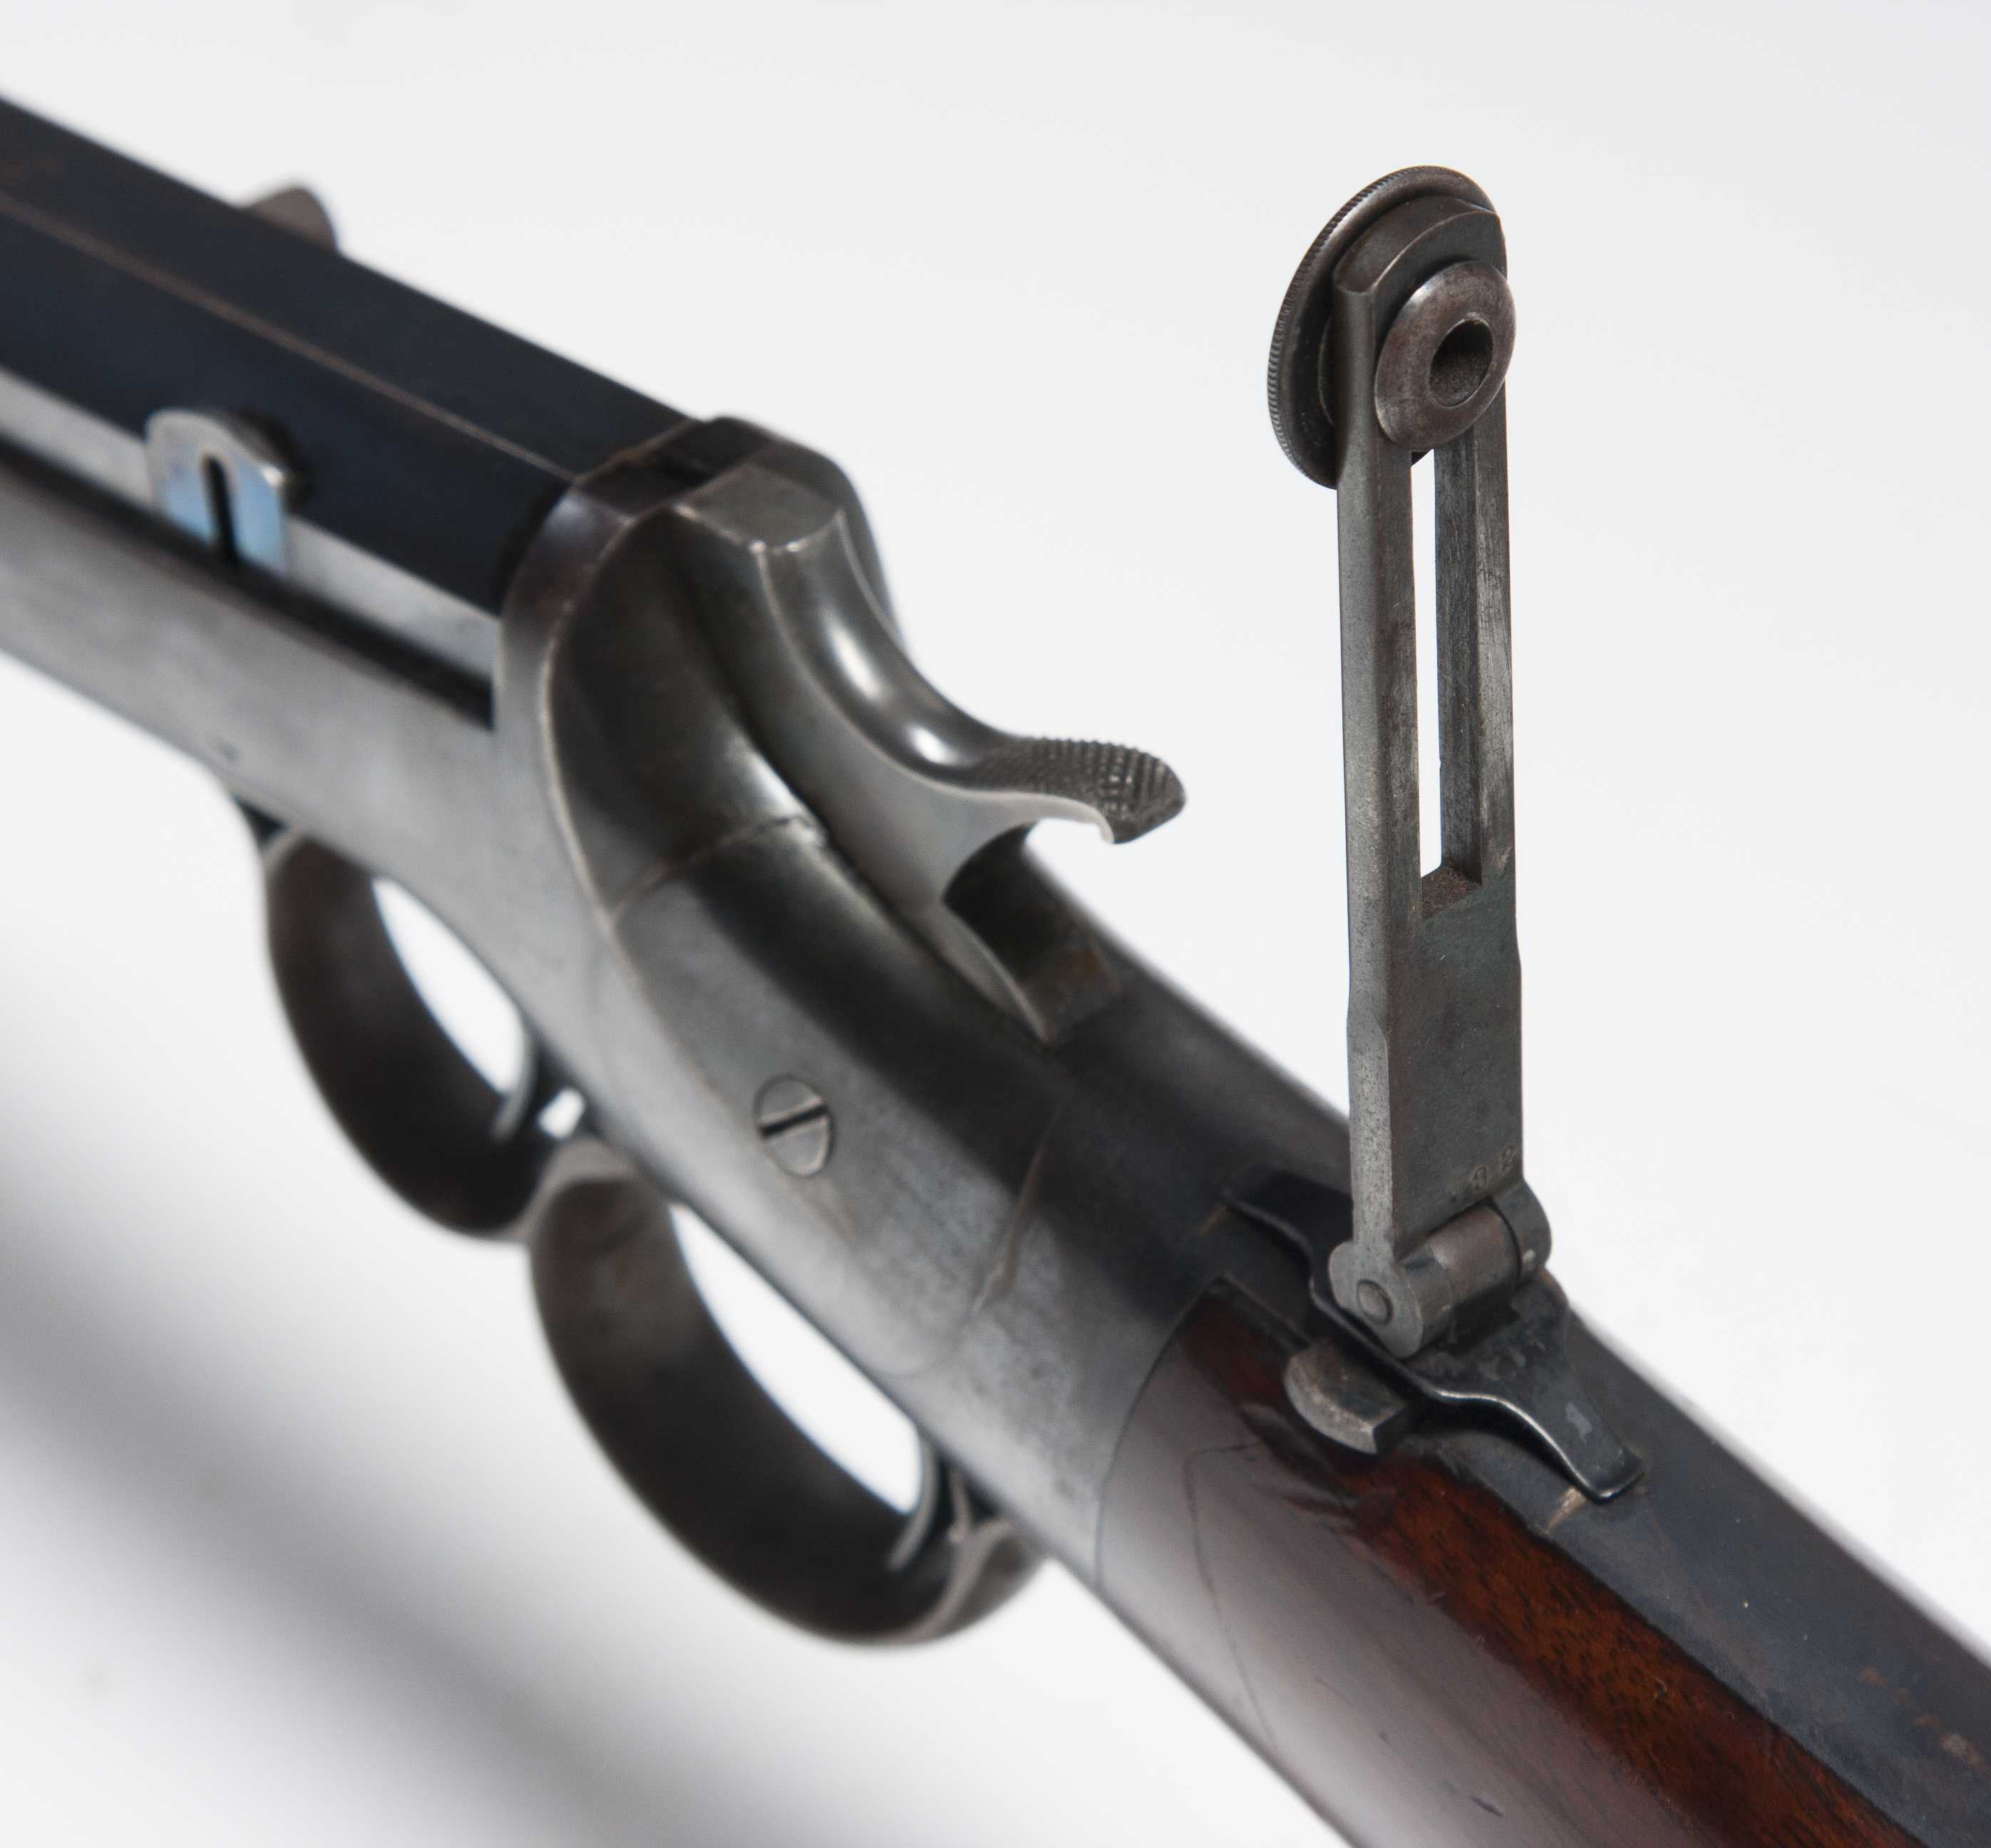 Frank Wesson Type 2 Two Trigger Target Rifle